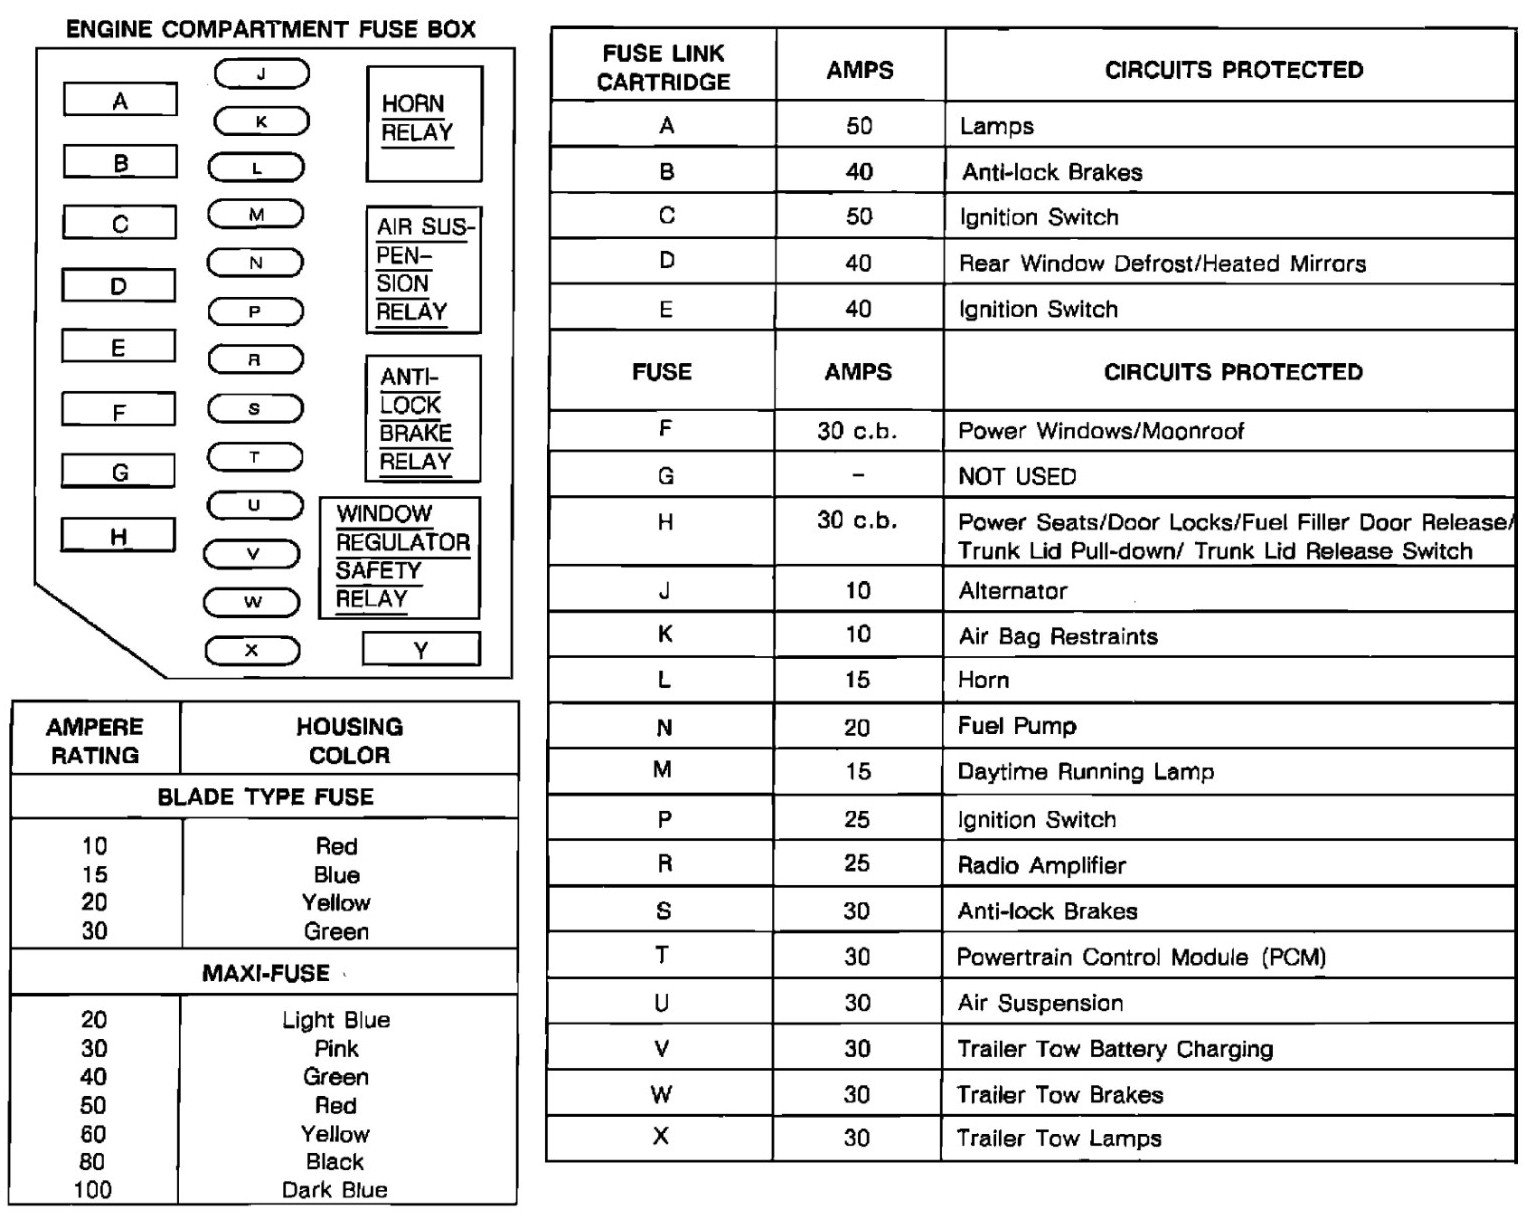 fuse box diagram for 1998 lincoln town car lincoln auto 04 lincoln town car  fuse box 04 lincoln town car fuse box